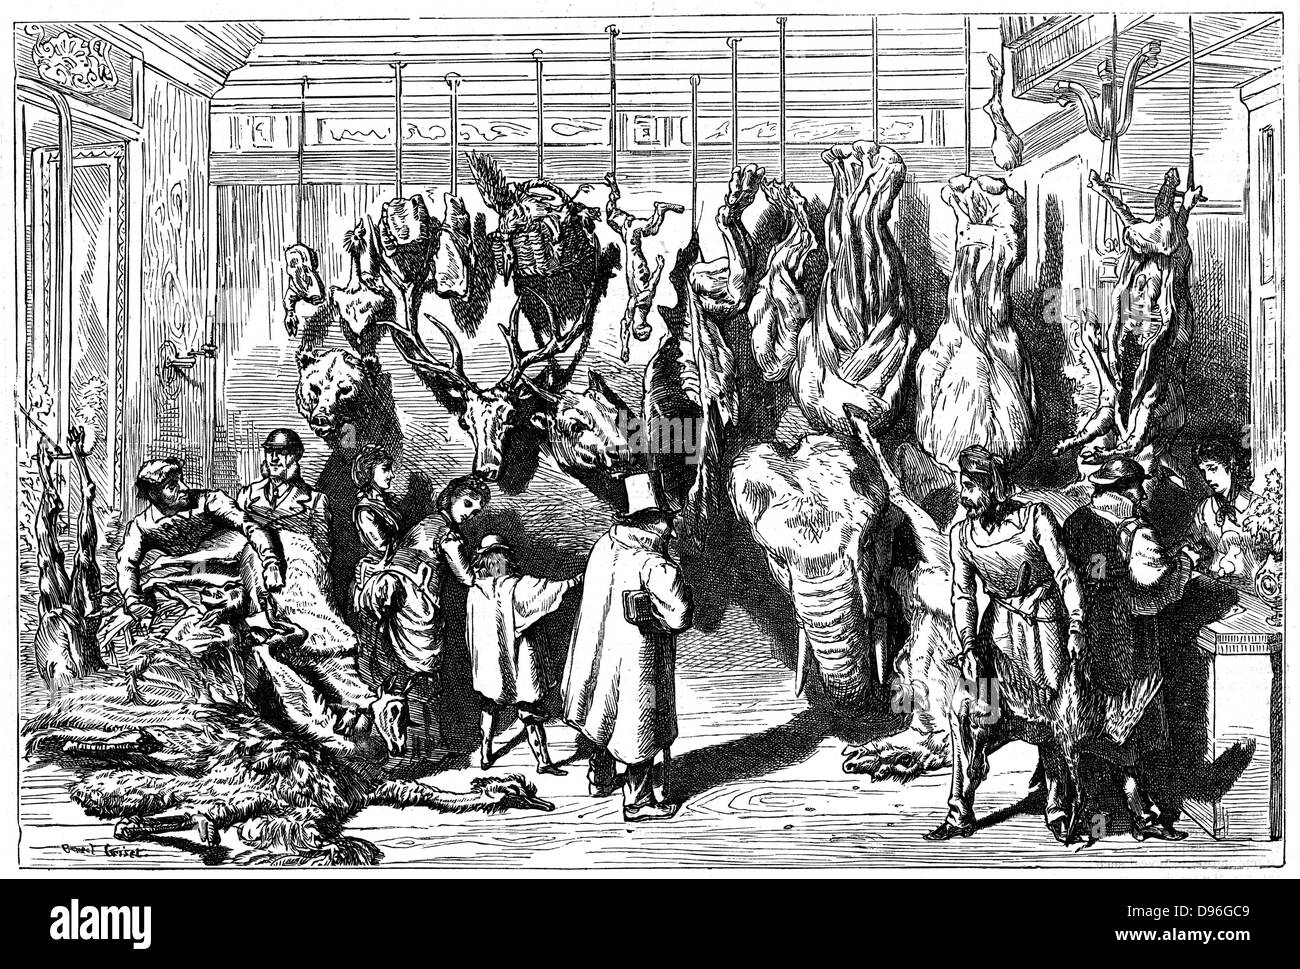 Franco-Prussian War 1870-1871: Siege of Paris September 1870 to late January 1871.  An English butcher's Boulevard Haussmann, with meat from animals  from the Jardins des Plantes (Paris Zoo) for sale, including elephant.  Wood engraving. Stock Photo